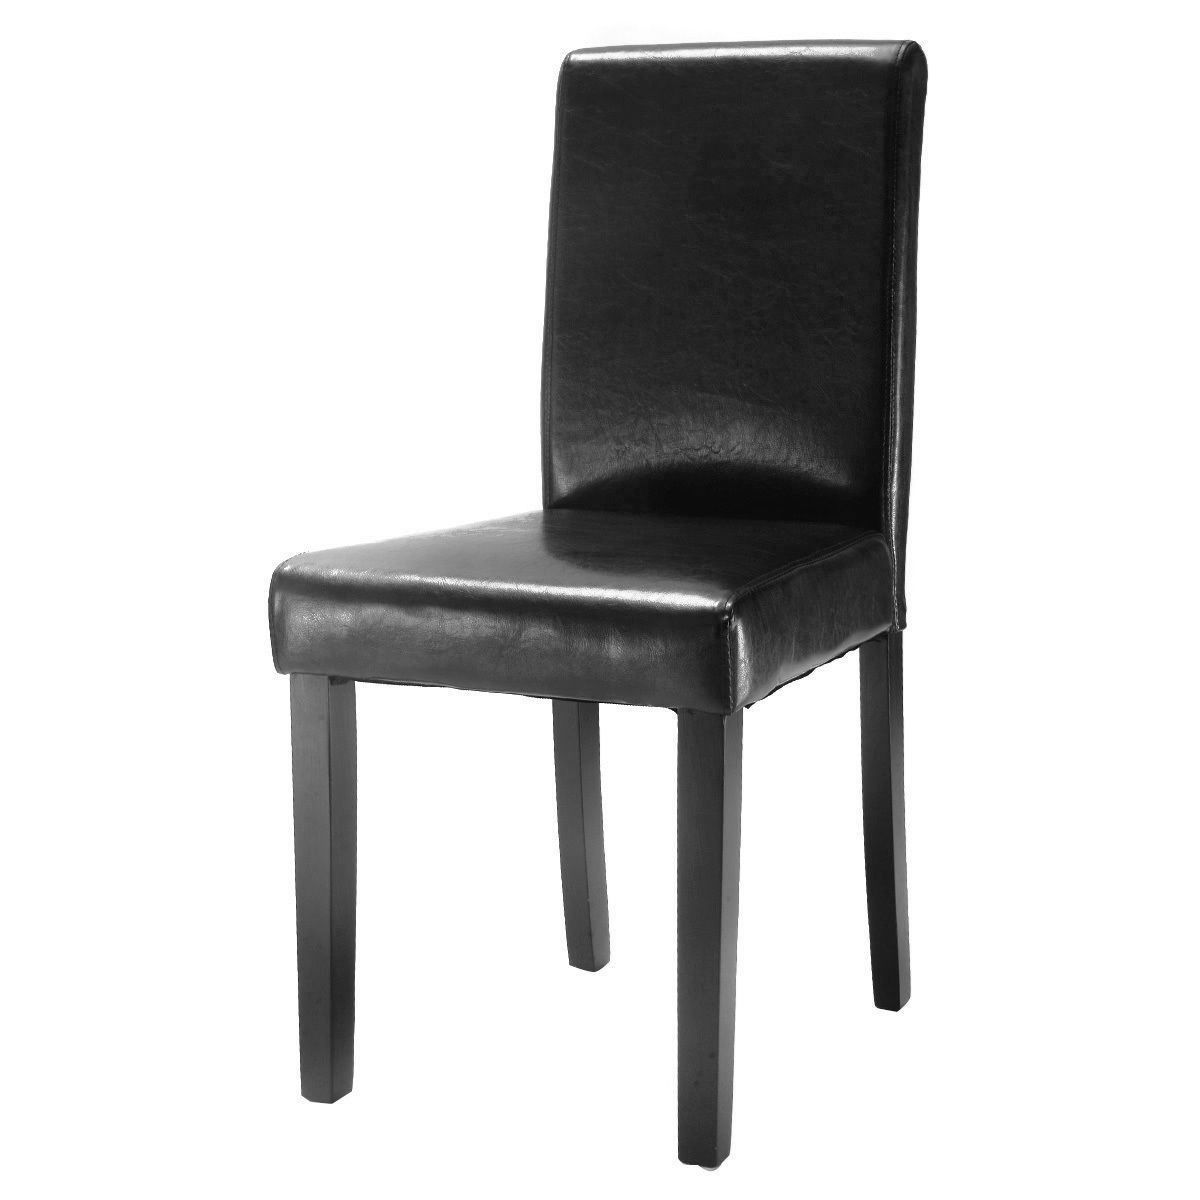 Picture of Leather Contemporary Dining Chairs Set of 2 Black